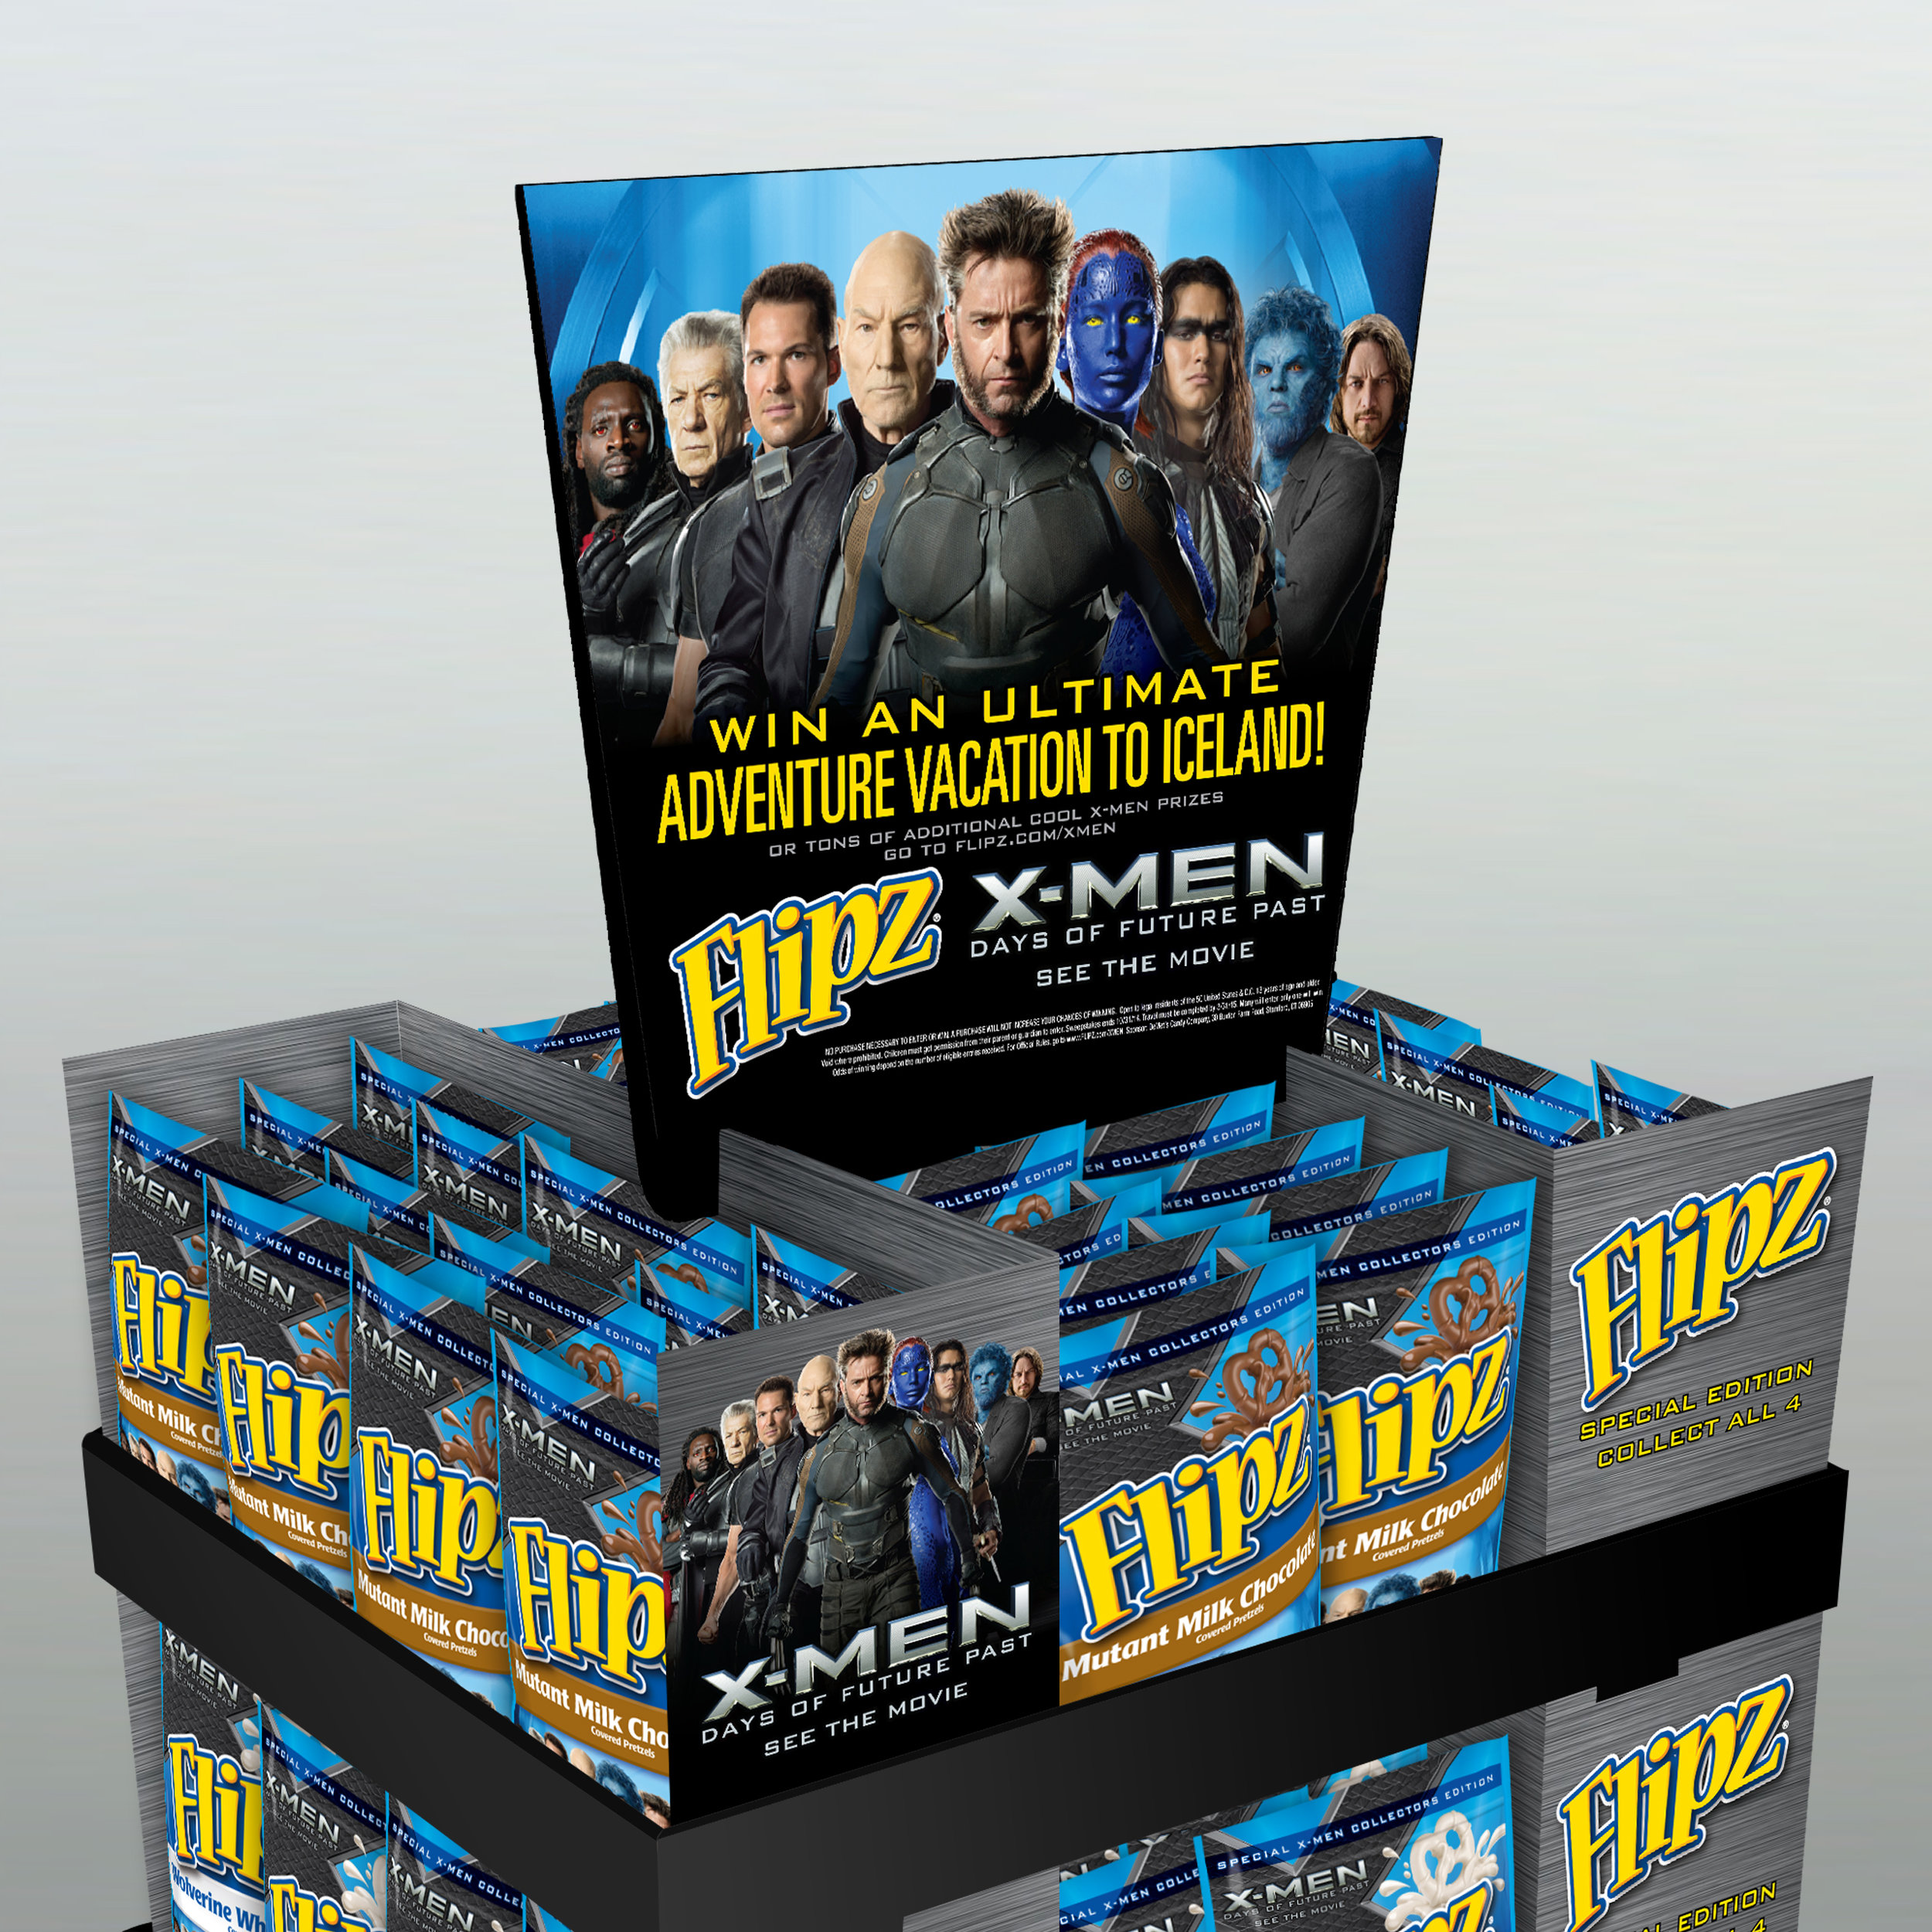 """X-MEN Pallet Display   The following is placeholder text known as """"lorem ipsum,"""" which is scrambled Latin used by designers to mimic real copy. Donec eu est non lacus lacinia semper. Mauris id fermentum nulla. In sit amet felis malesuada, feugiat purus eget, varius mi. In sit amet felis malesuada, feugiat purus eget, varius mi."""